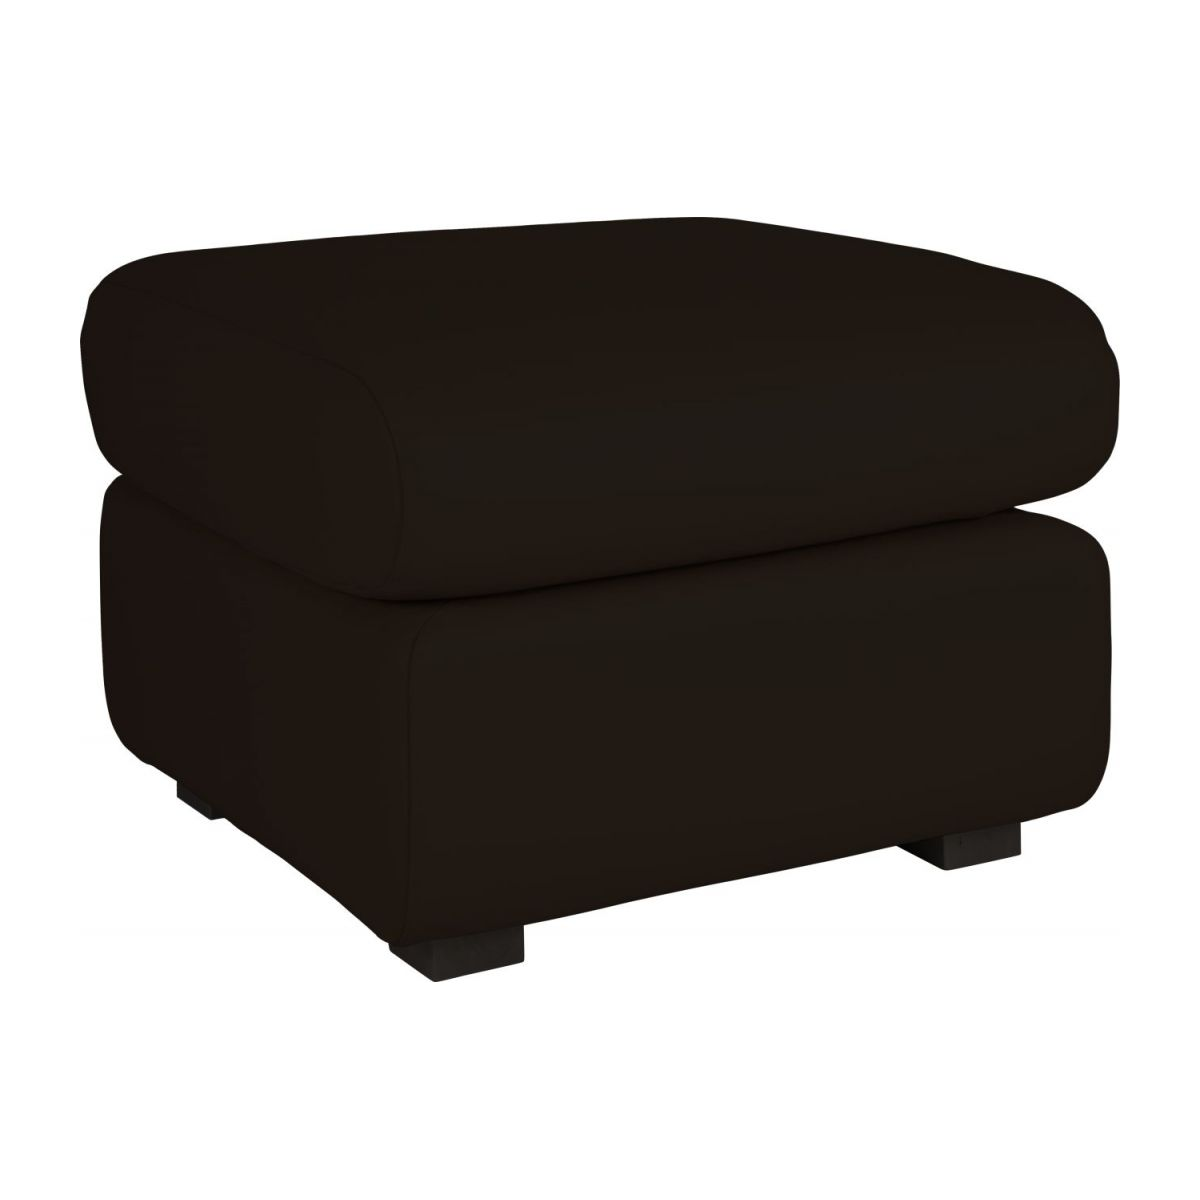 Hocker Leder Porto 3 Hocker Aus Leder